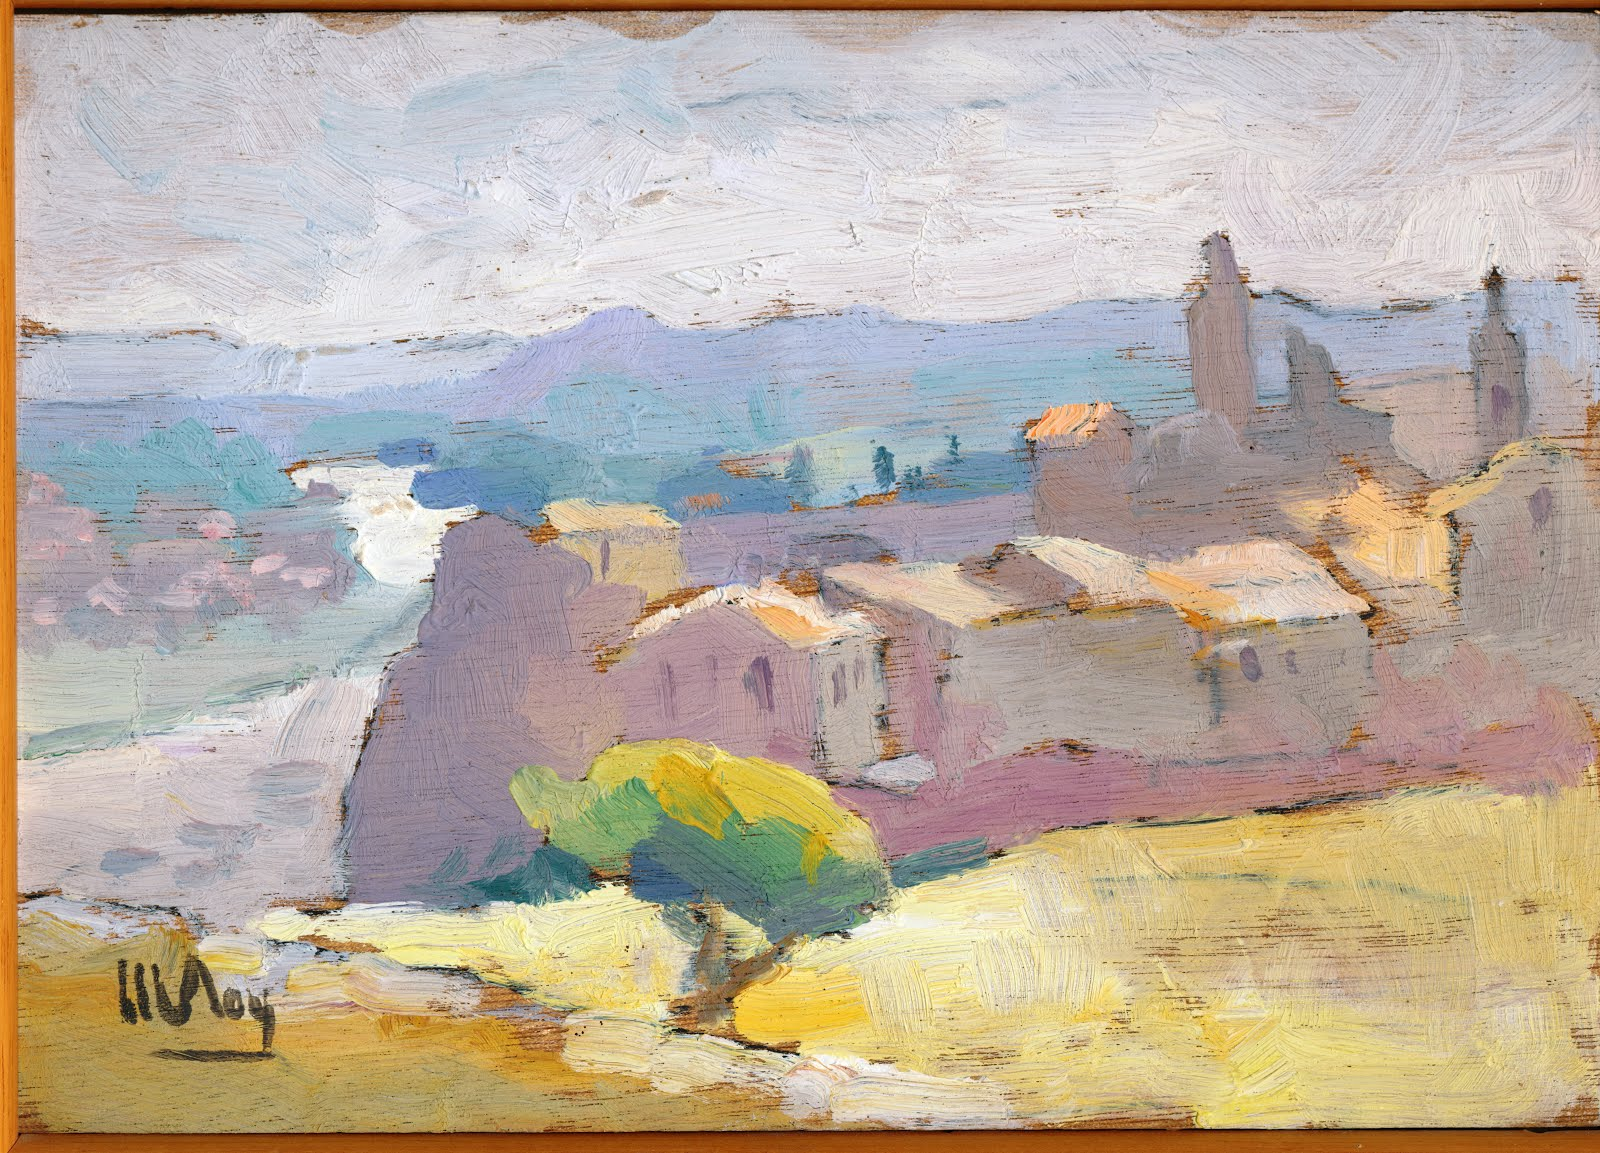 AIGUEZE VU DE LA GARRIGUE AQUARELLE DE Marcel ROY Collection privée de Claude MEUNIER